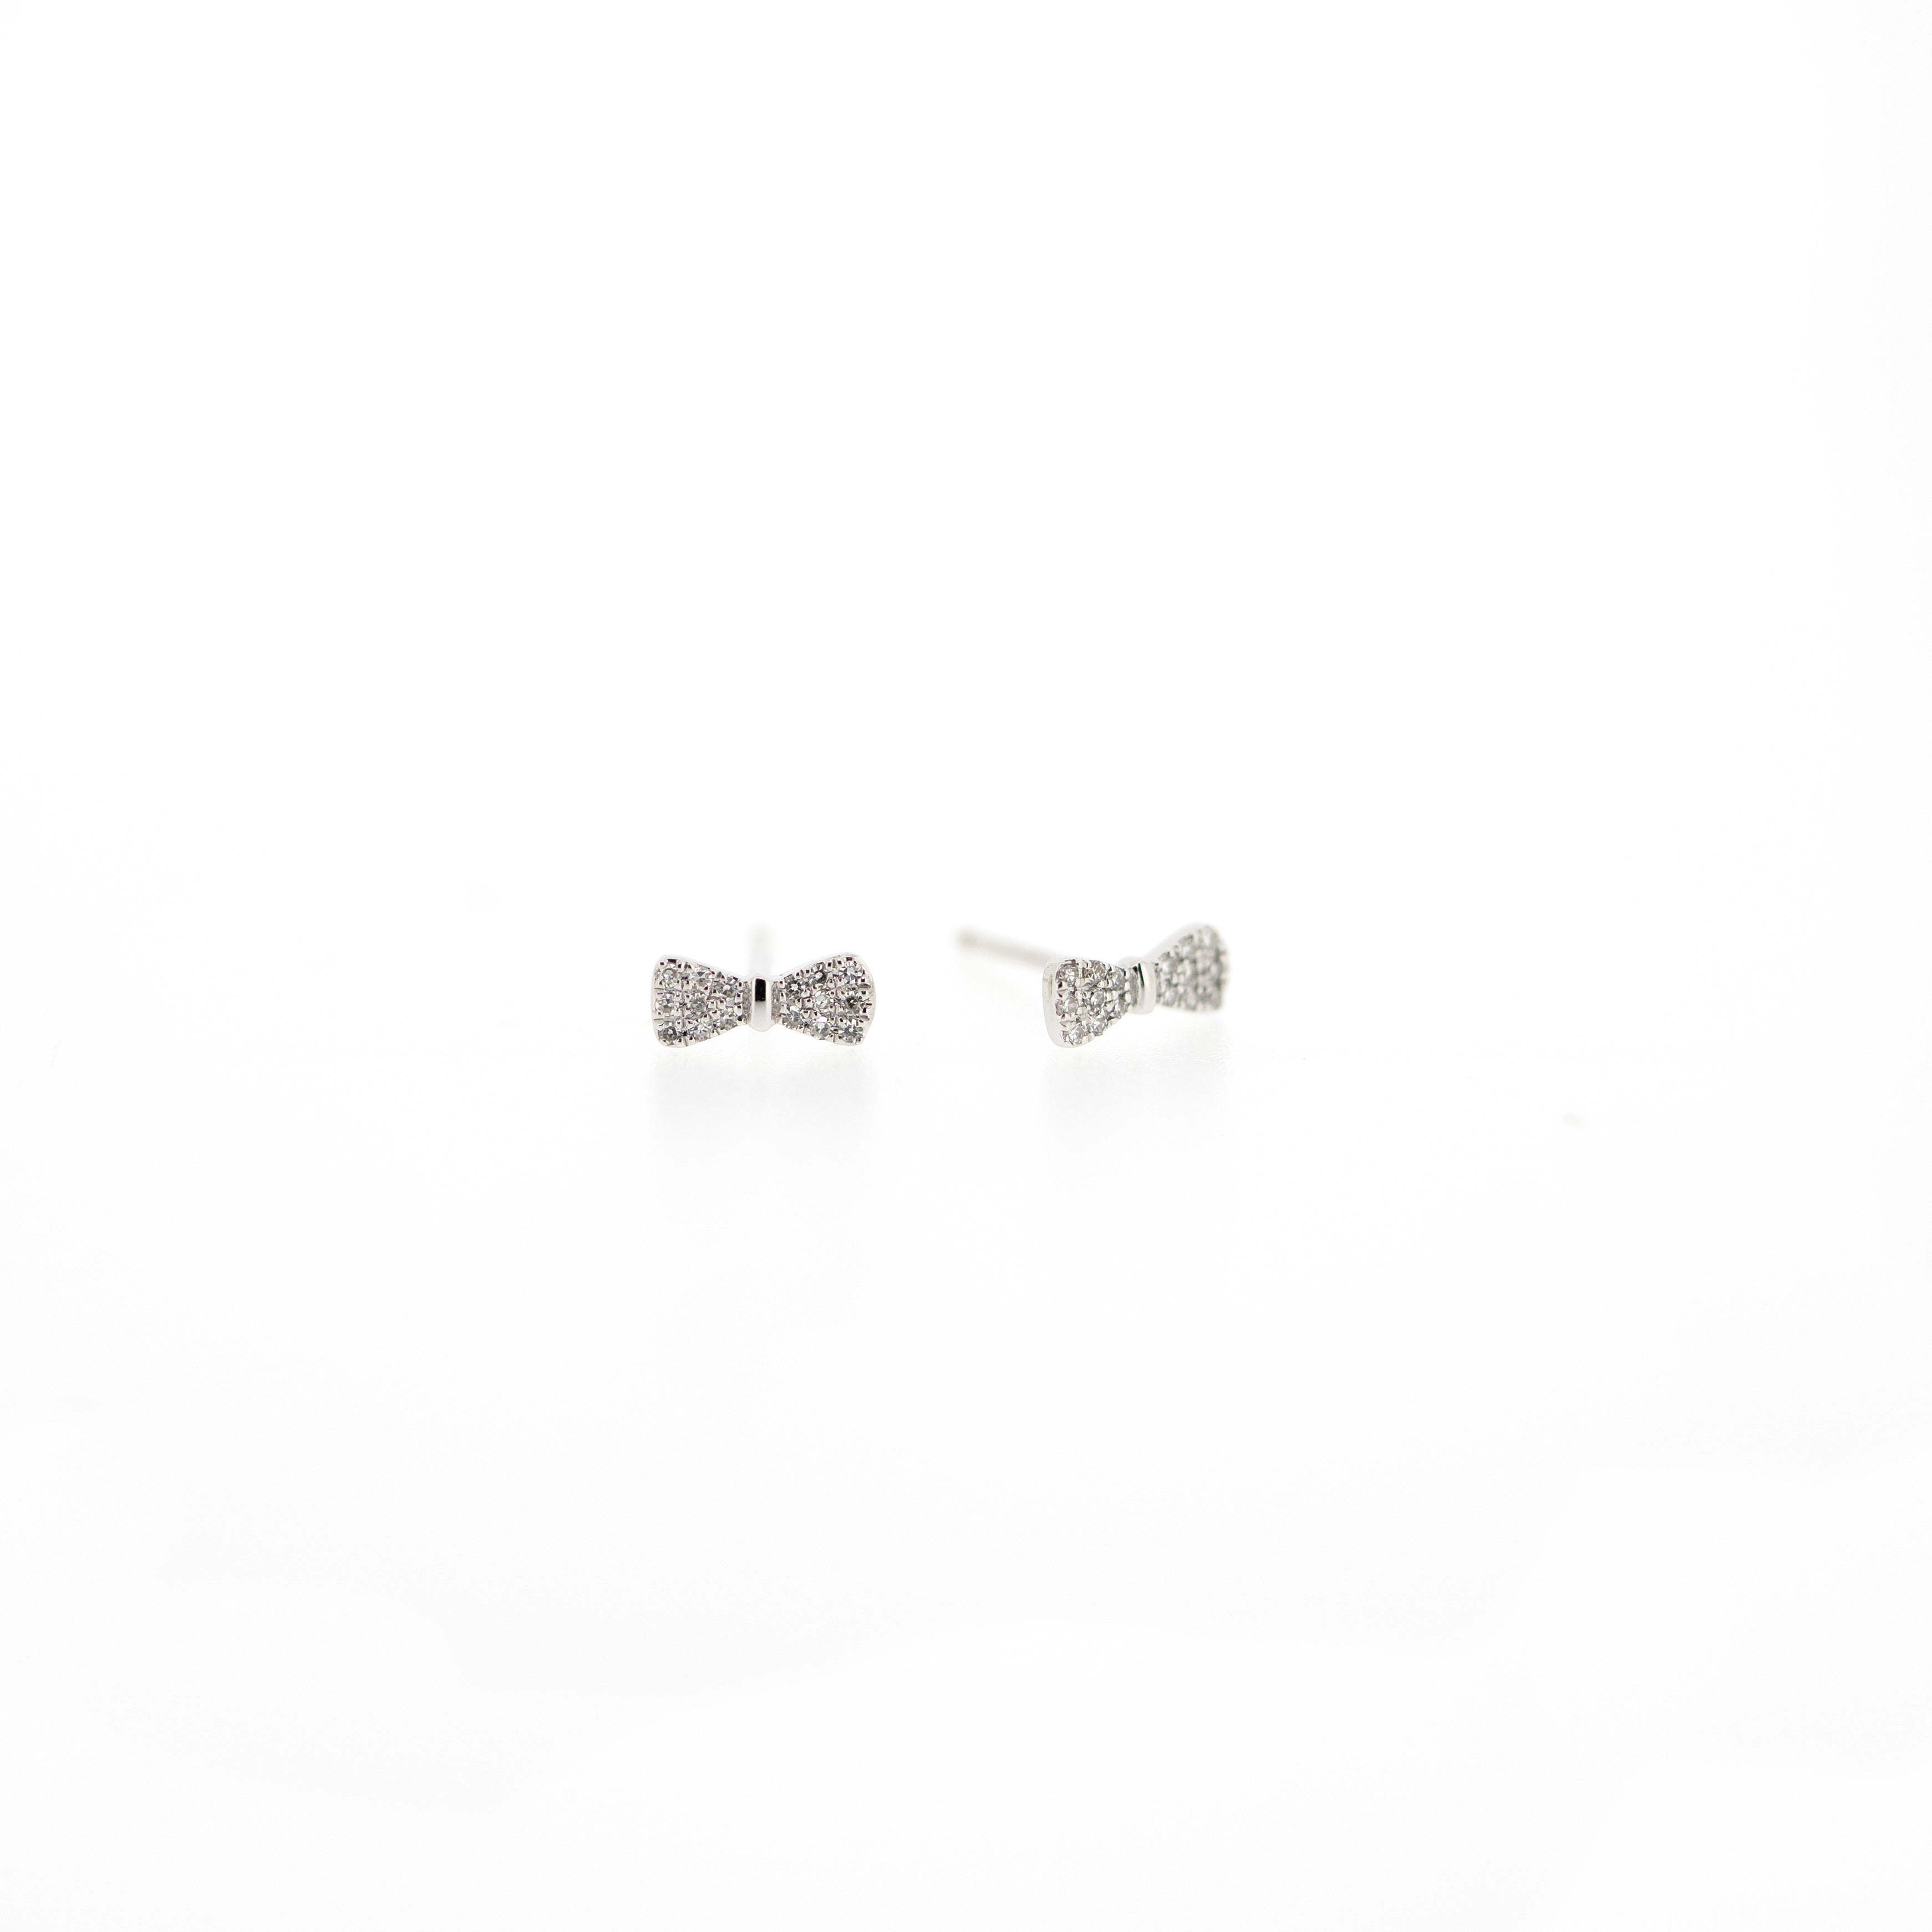 Samantha Bow Tie Earrings